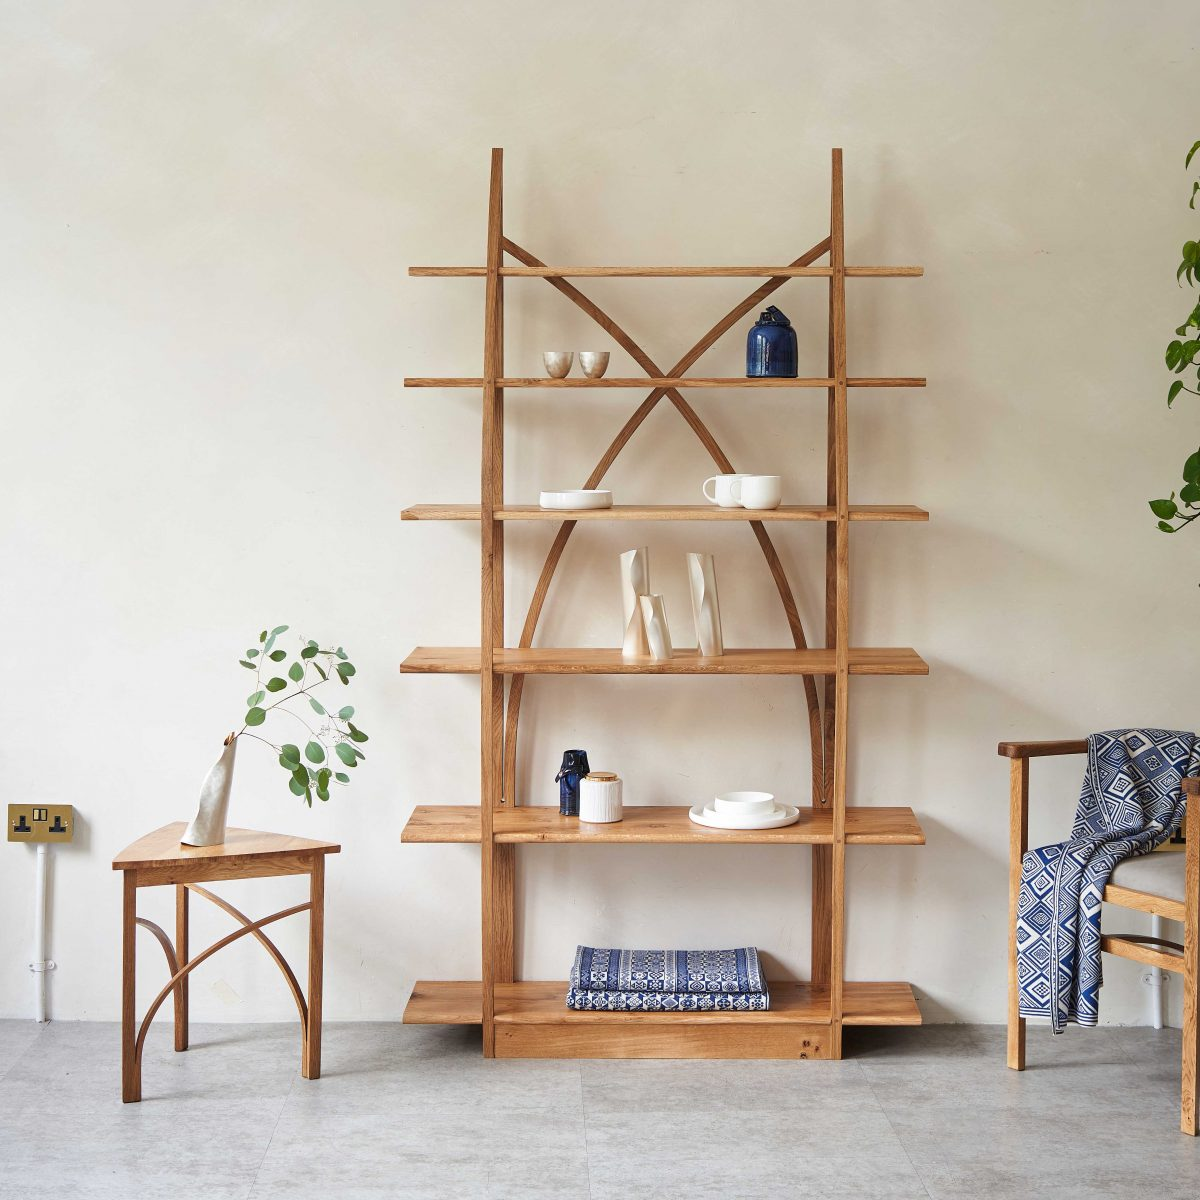 A group photo of work by Design-Nation exhibitors at Decorex, by Yeshen Venema styled by Jessica Yeung